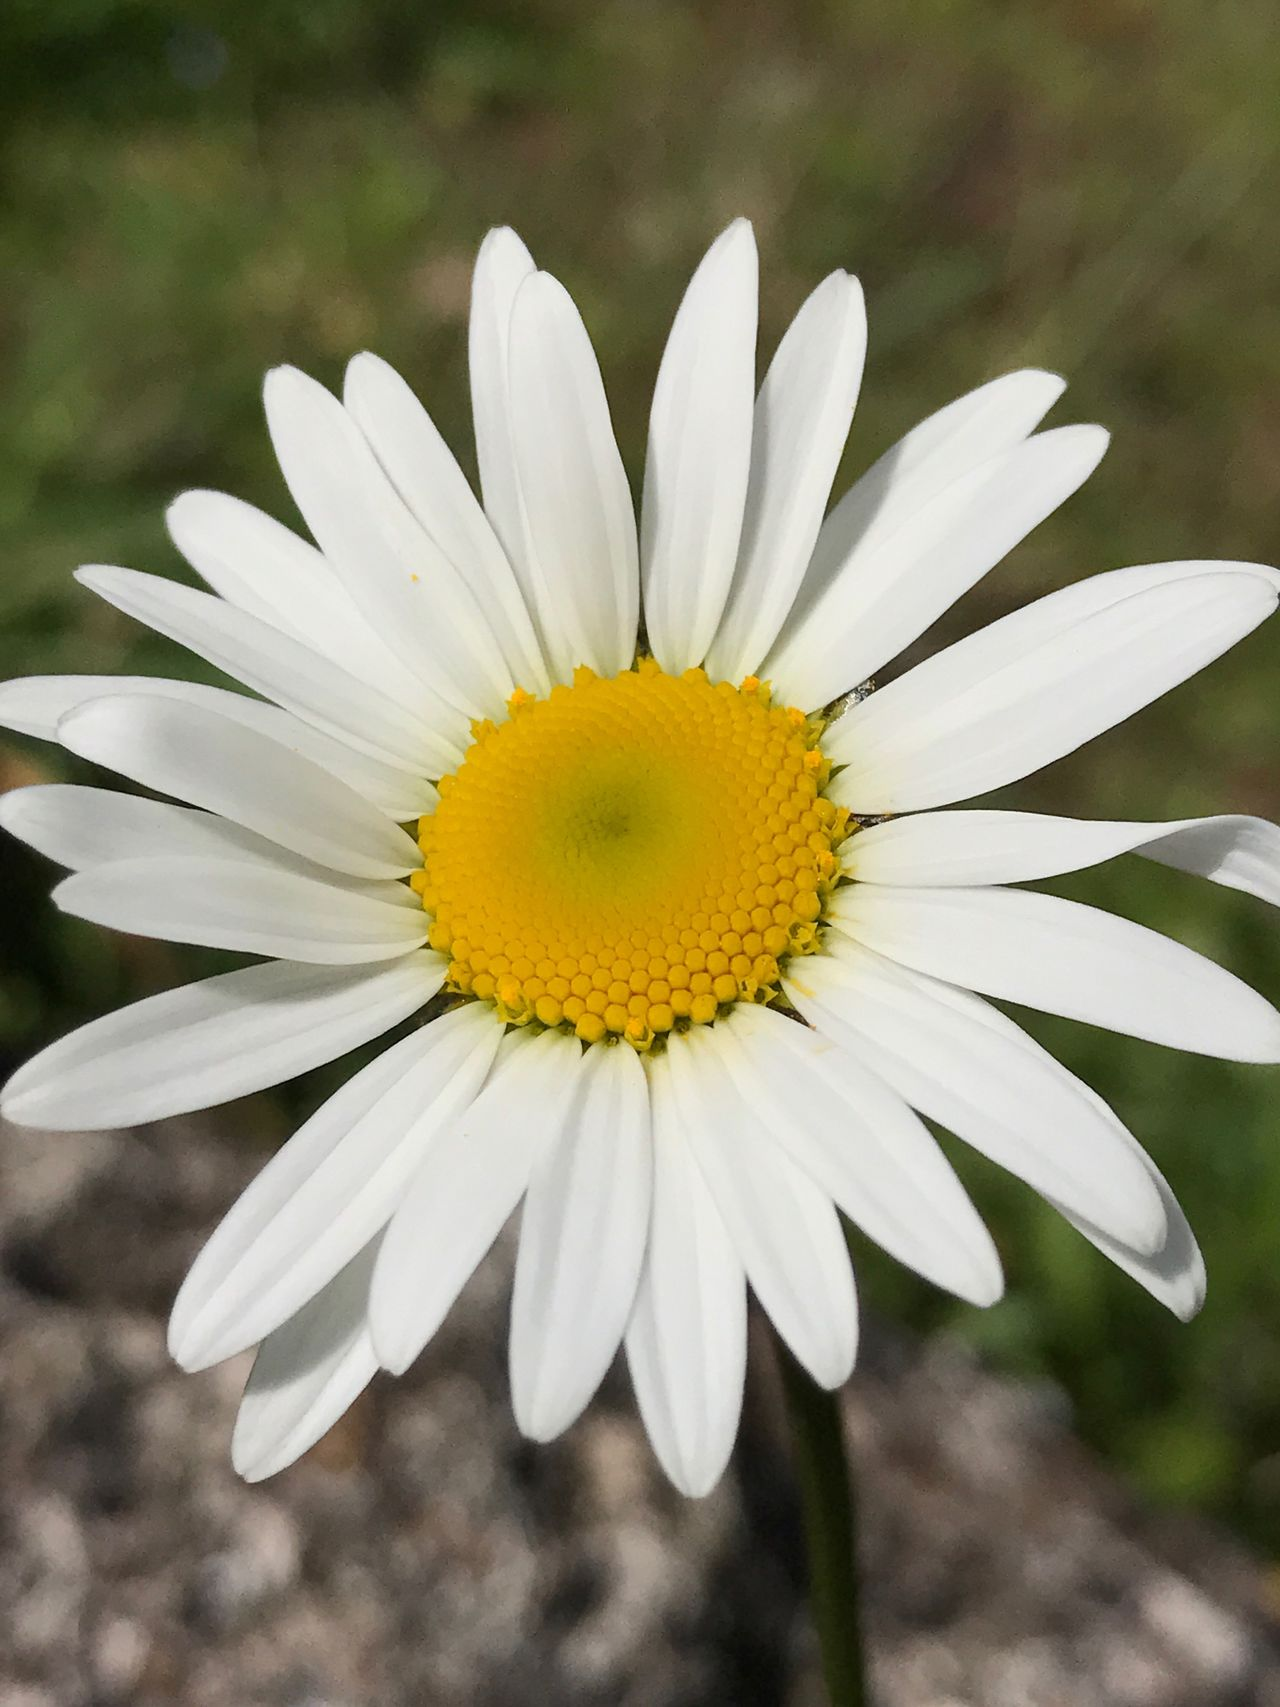 Flower Fragility Beauty In Nature Freshness Petal Flower Head Nature White Color Growth Close-up Outdoors Pollen Yellow Day Blooming No People Daisy Flower Daisy Close Up Magritte Blume Weiss Gelbe Blume 🌺